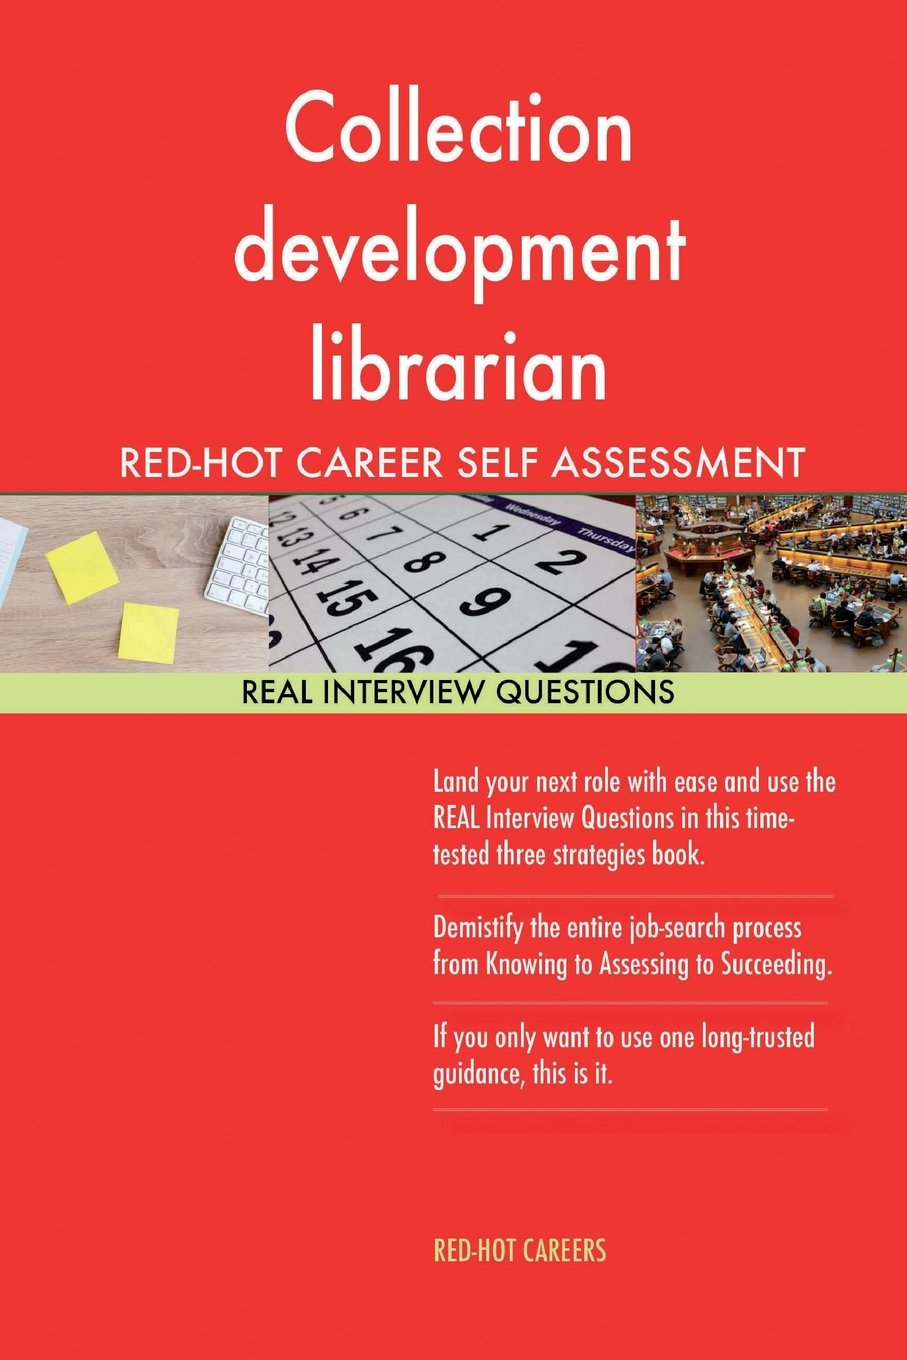 Collection Development Librarian RED HOT Career Self Assessment; 1184 REAL  Inter: Red Hot Careers: 9781985146921: Amazon.com: Books